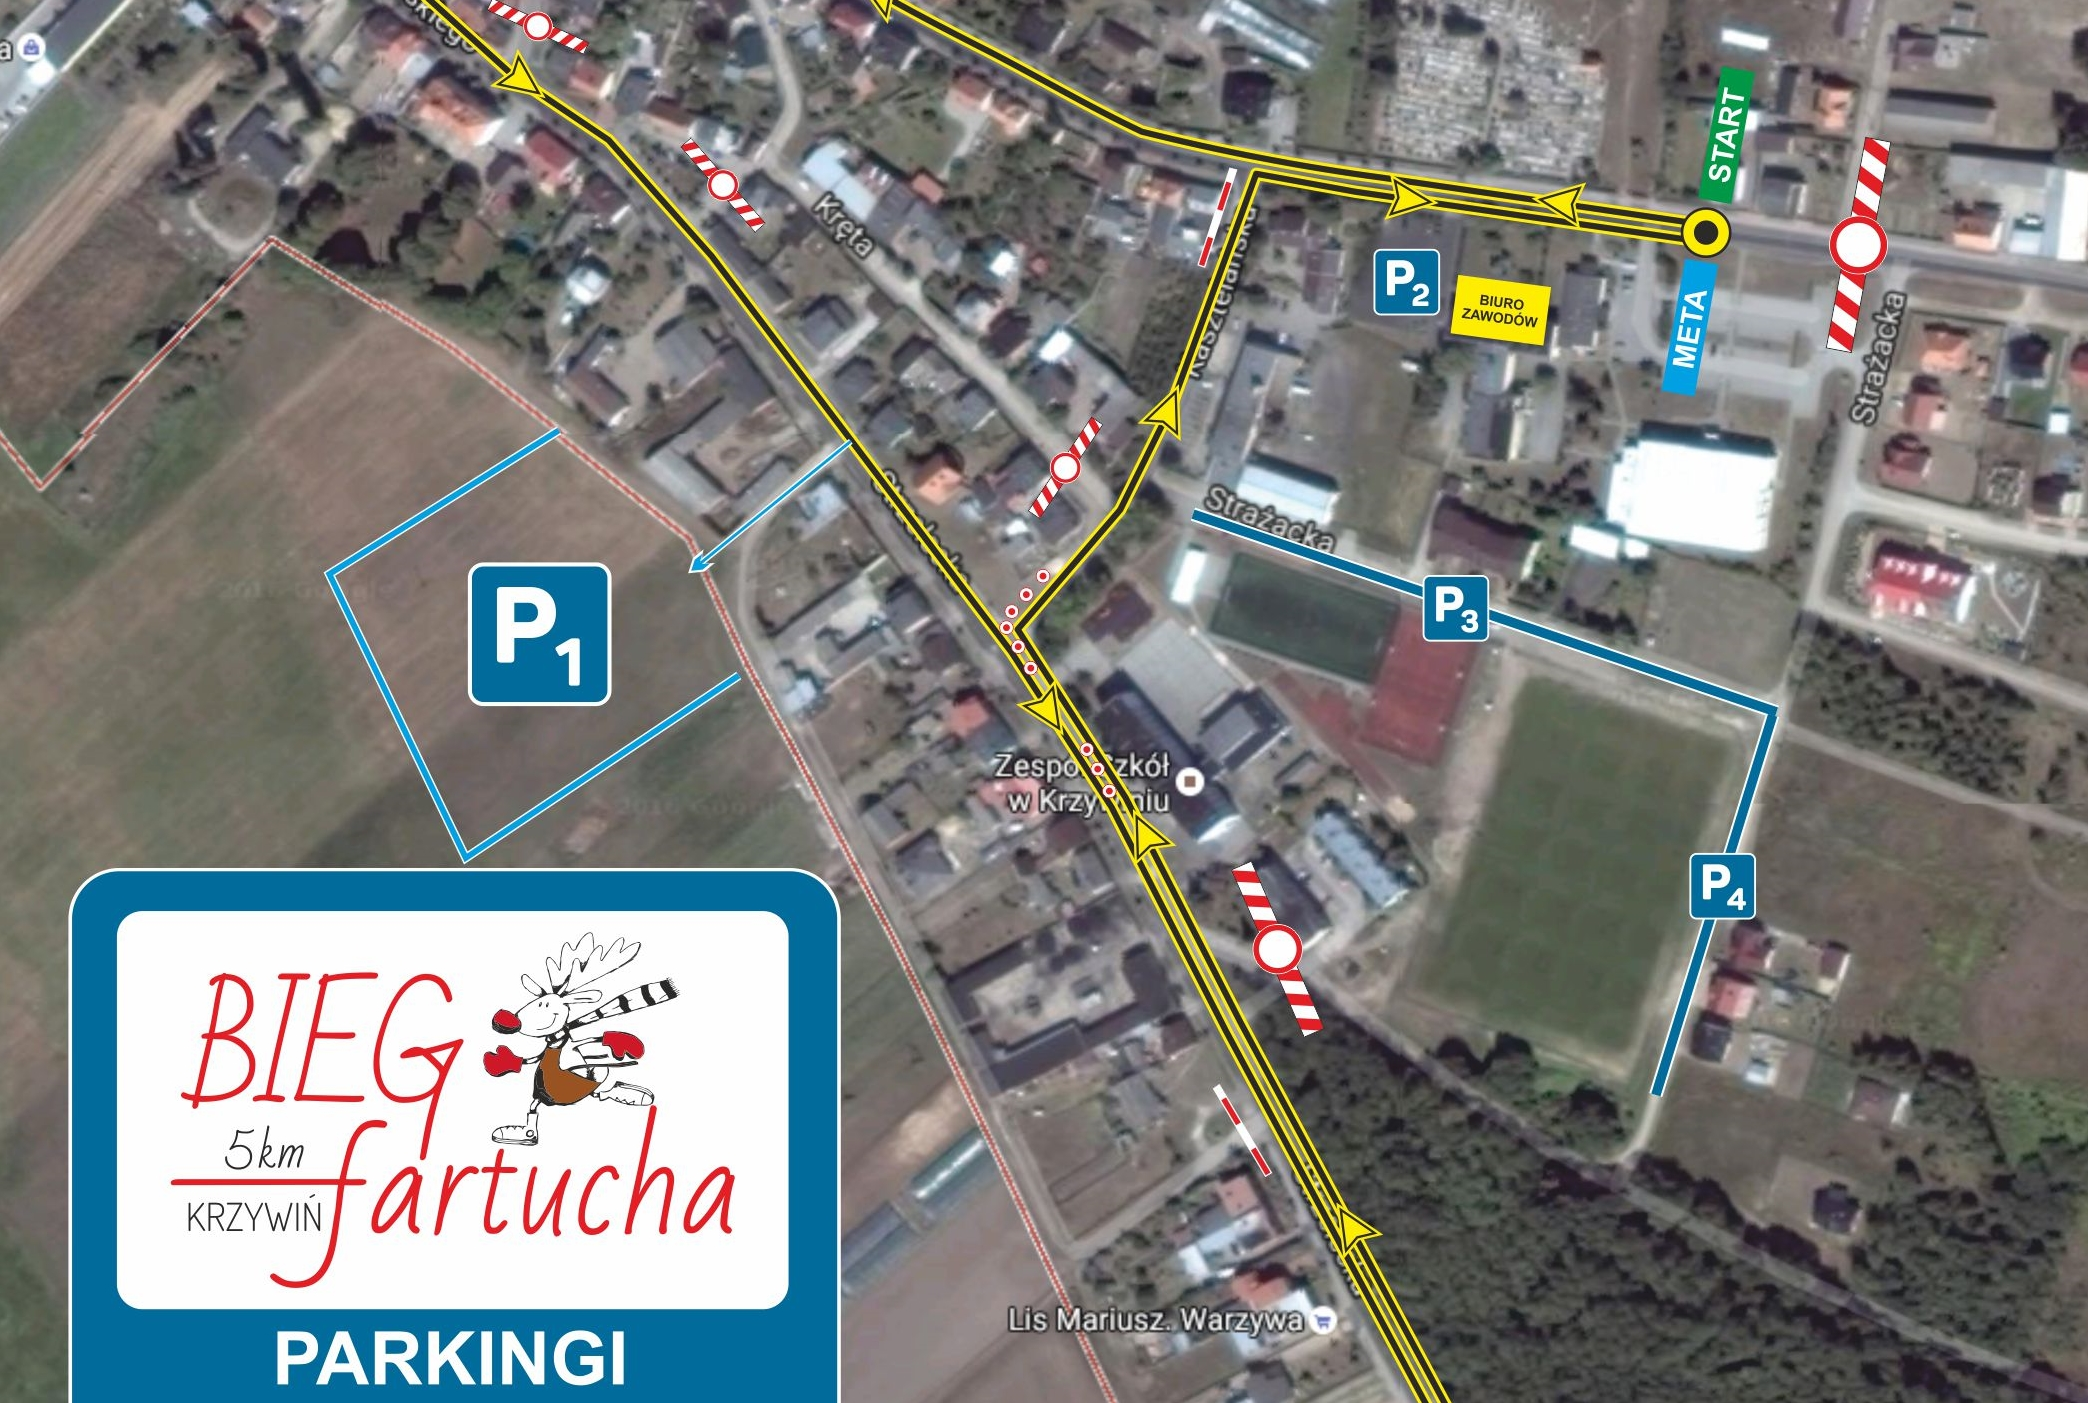 bieg FARTUCHA mapa 2017 parking-crop